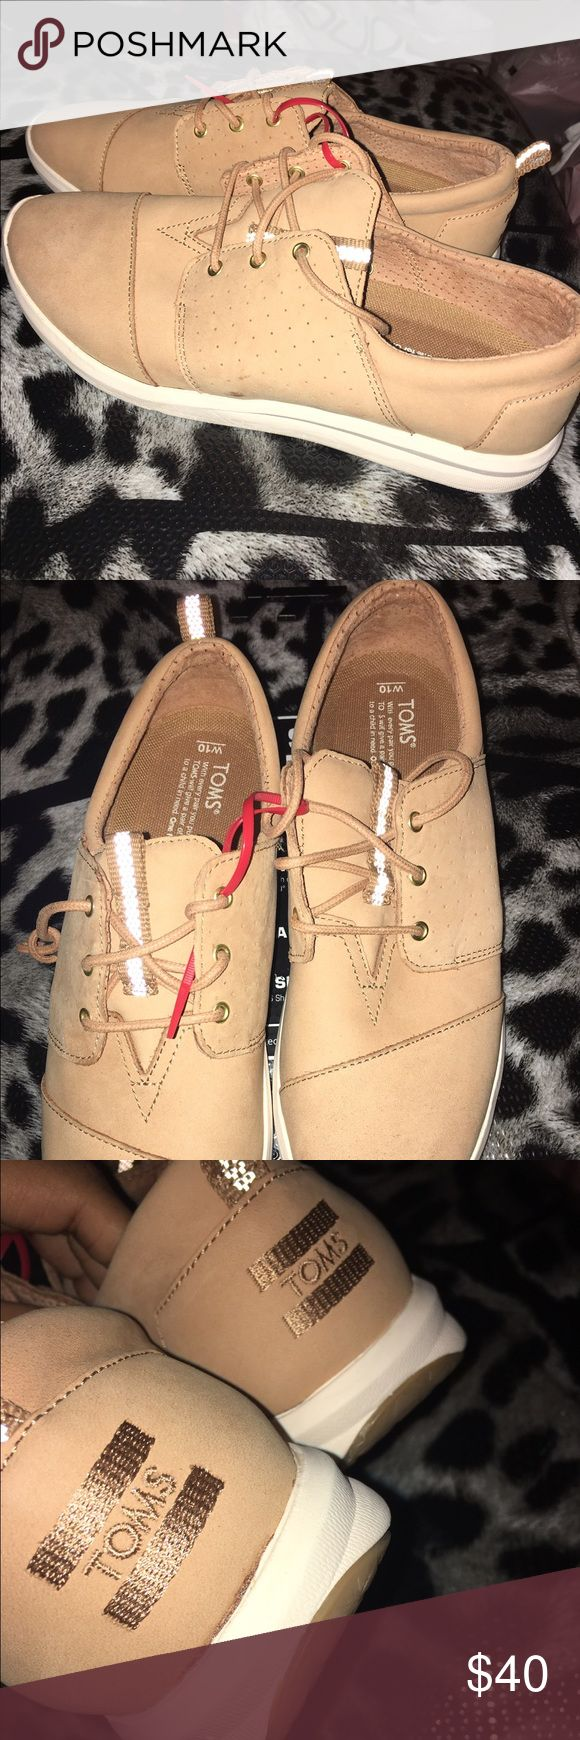 Toms Khaki Shoes BNWT Beautiful pair of Toms with a Yeezy vibe. Have reflective tongue and is a very cute yet comfortable pair of shoes. TOMS Shoes Sneakers